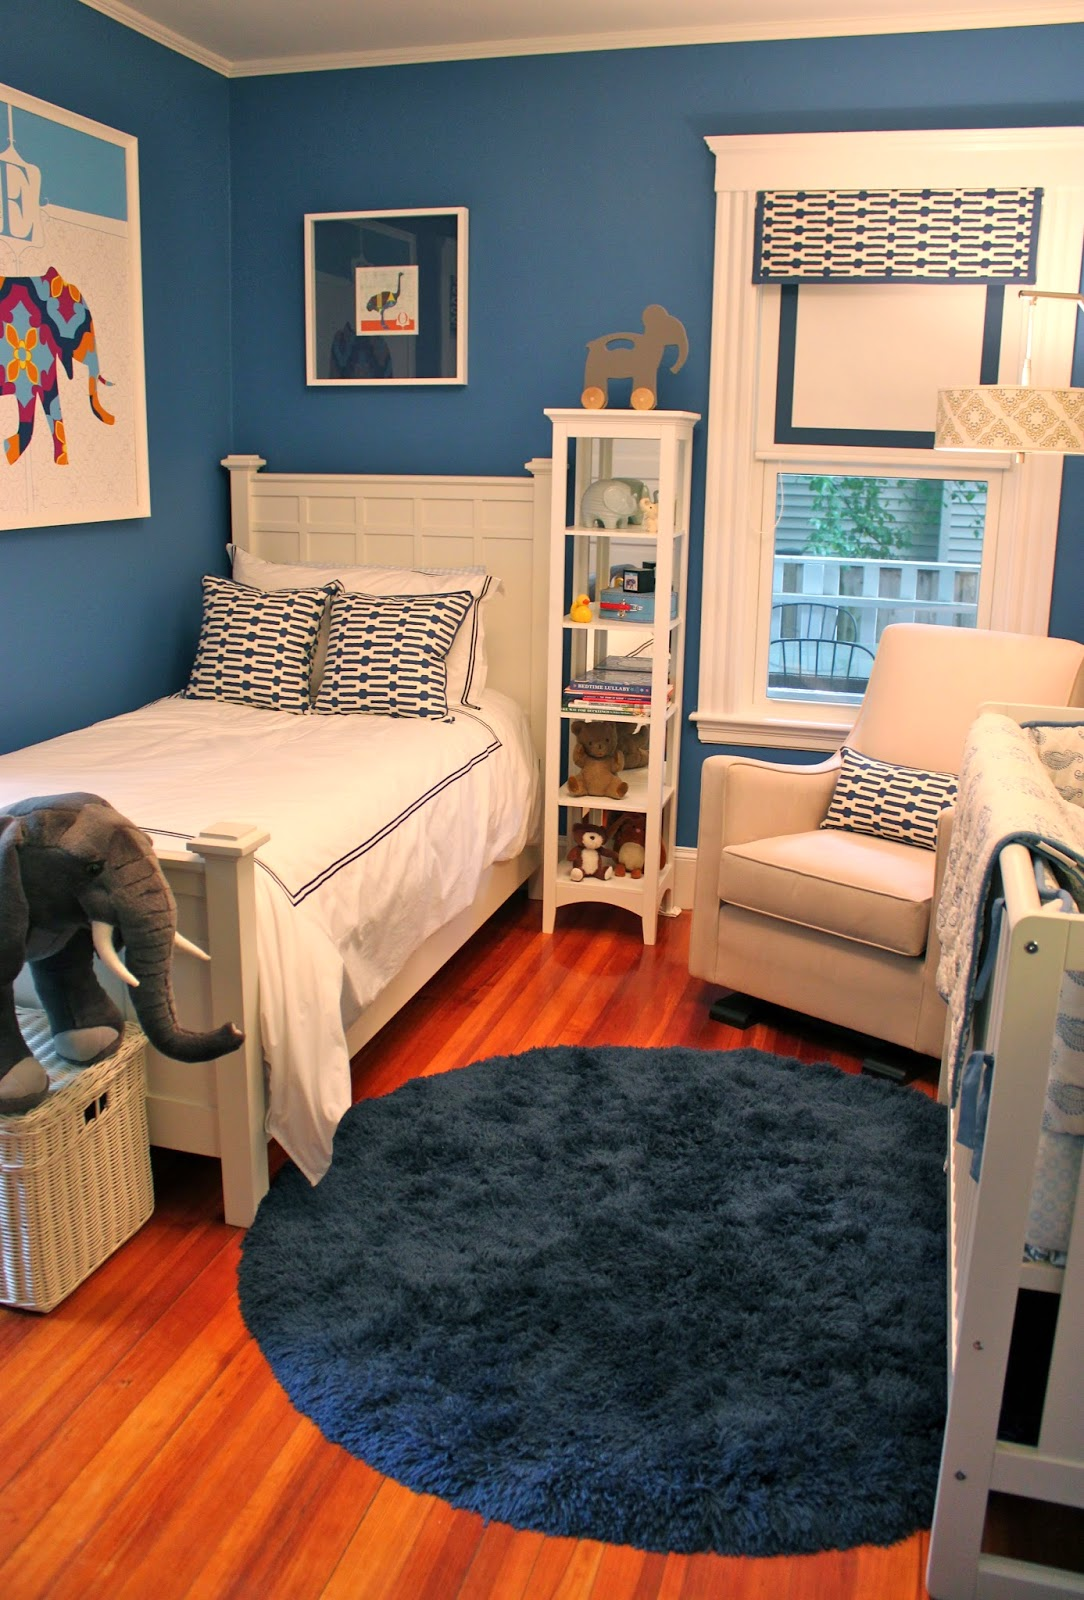 New Boys Bedding Sets Image Of Bed Ideas